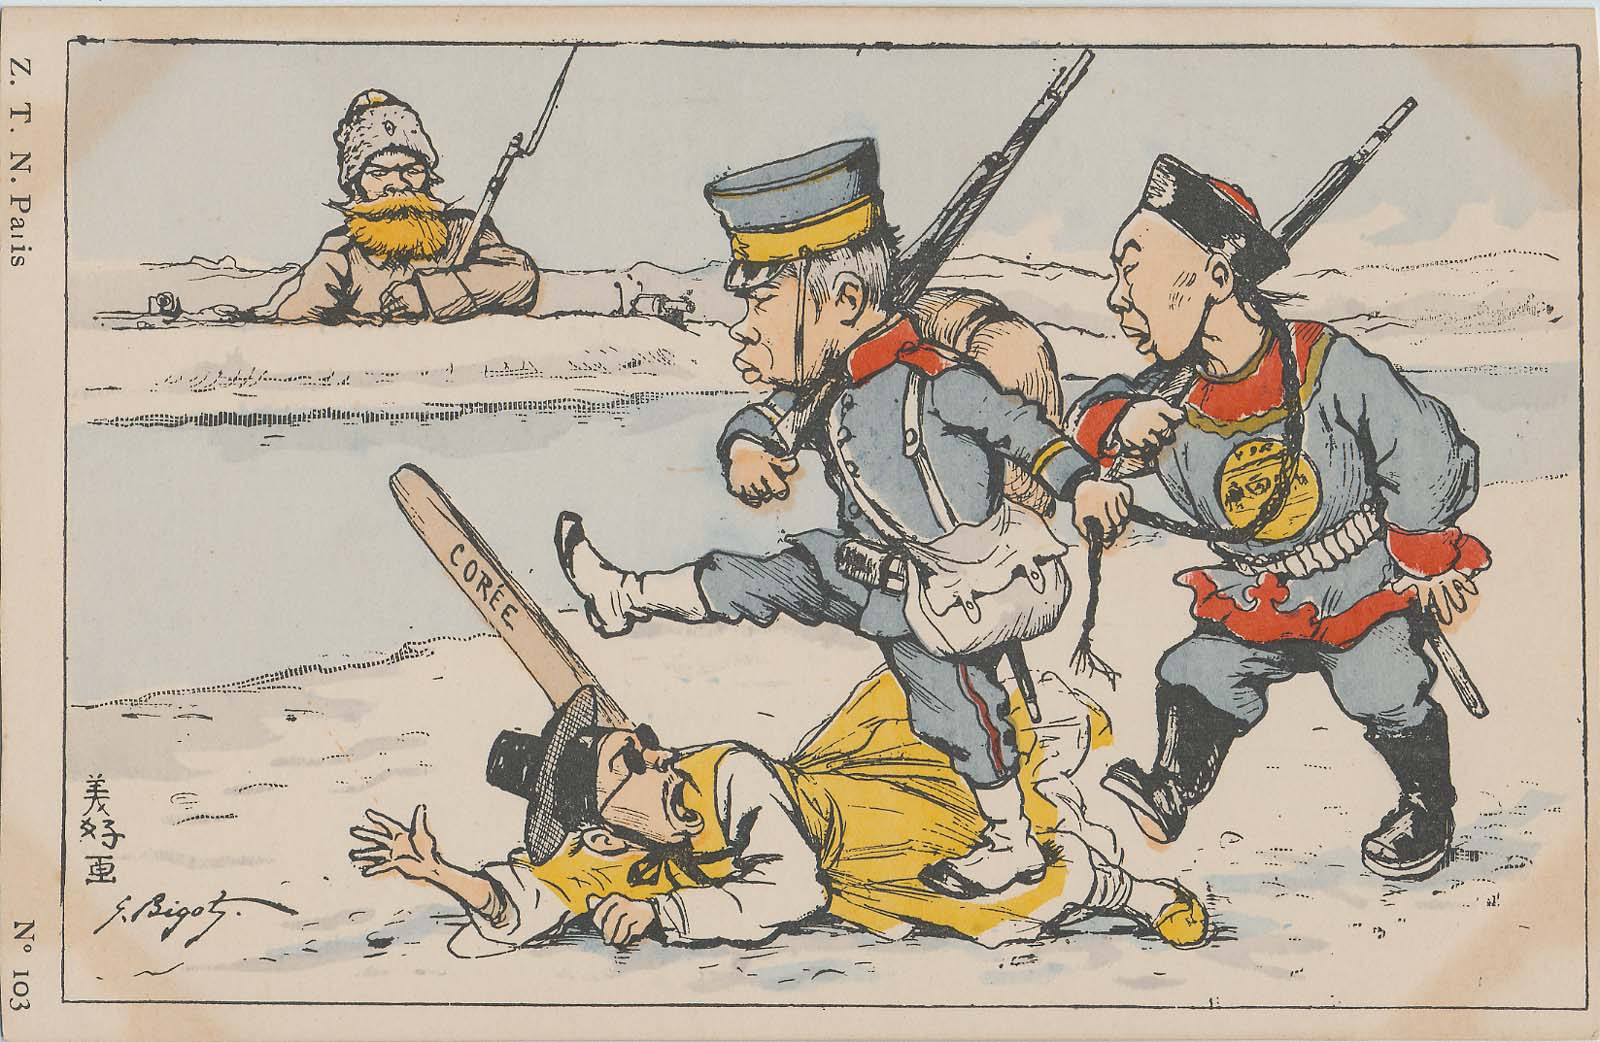 Political Cartoon Of China And Japan Trampling Korea As Russia Watches No 103 From An Unidentified Series